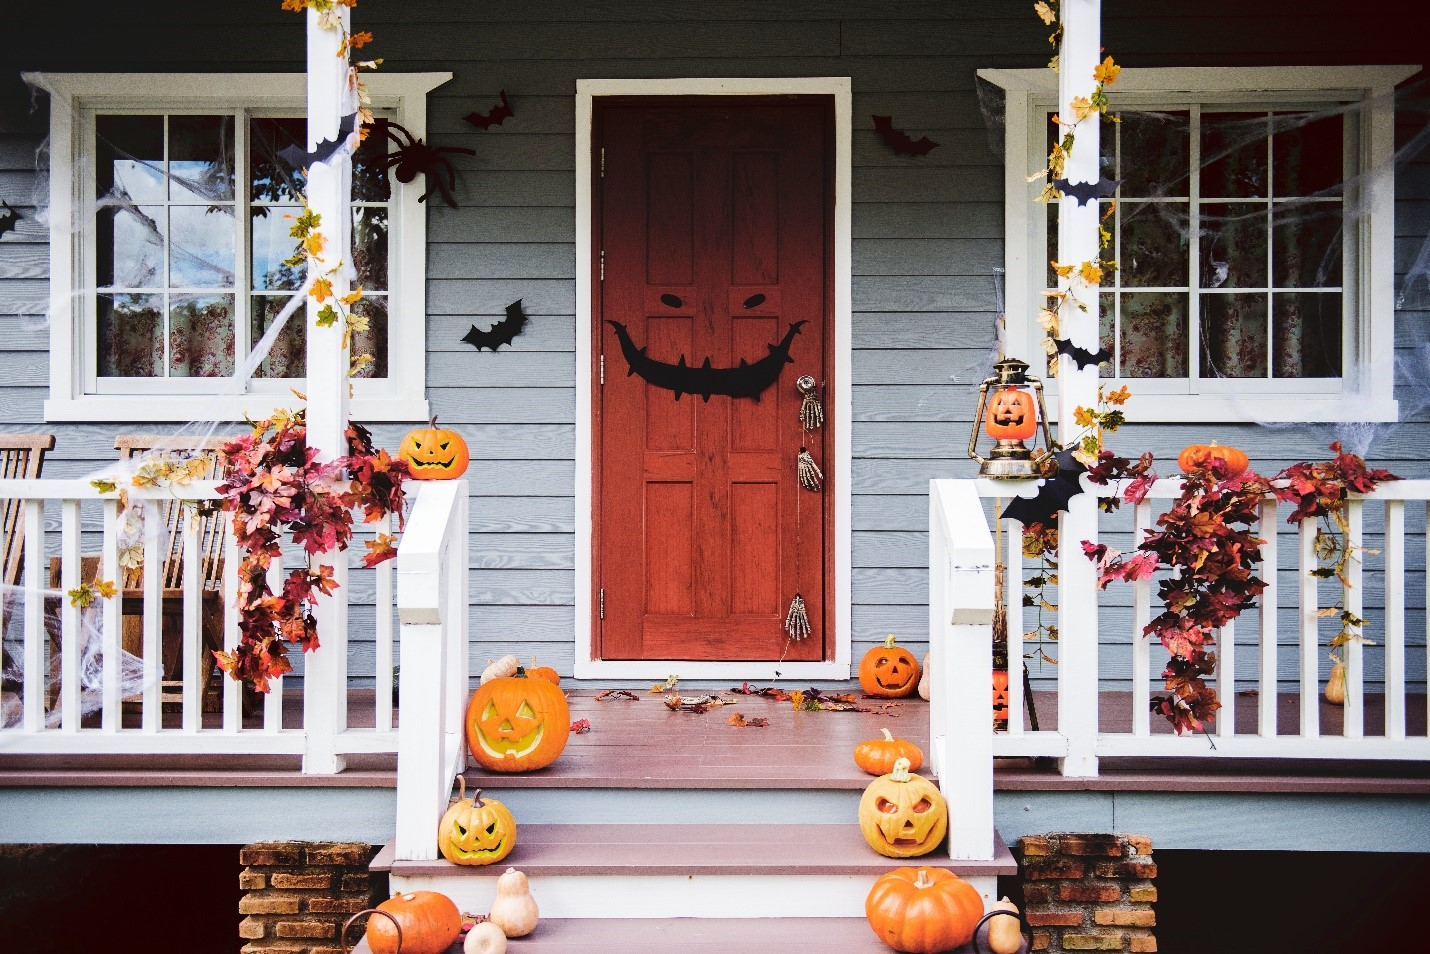 Porch decorated with pumpkins, paper bats